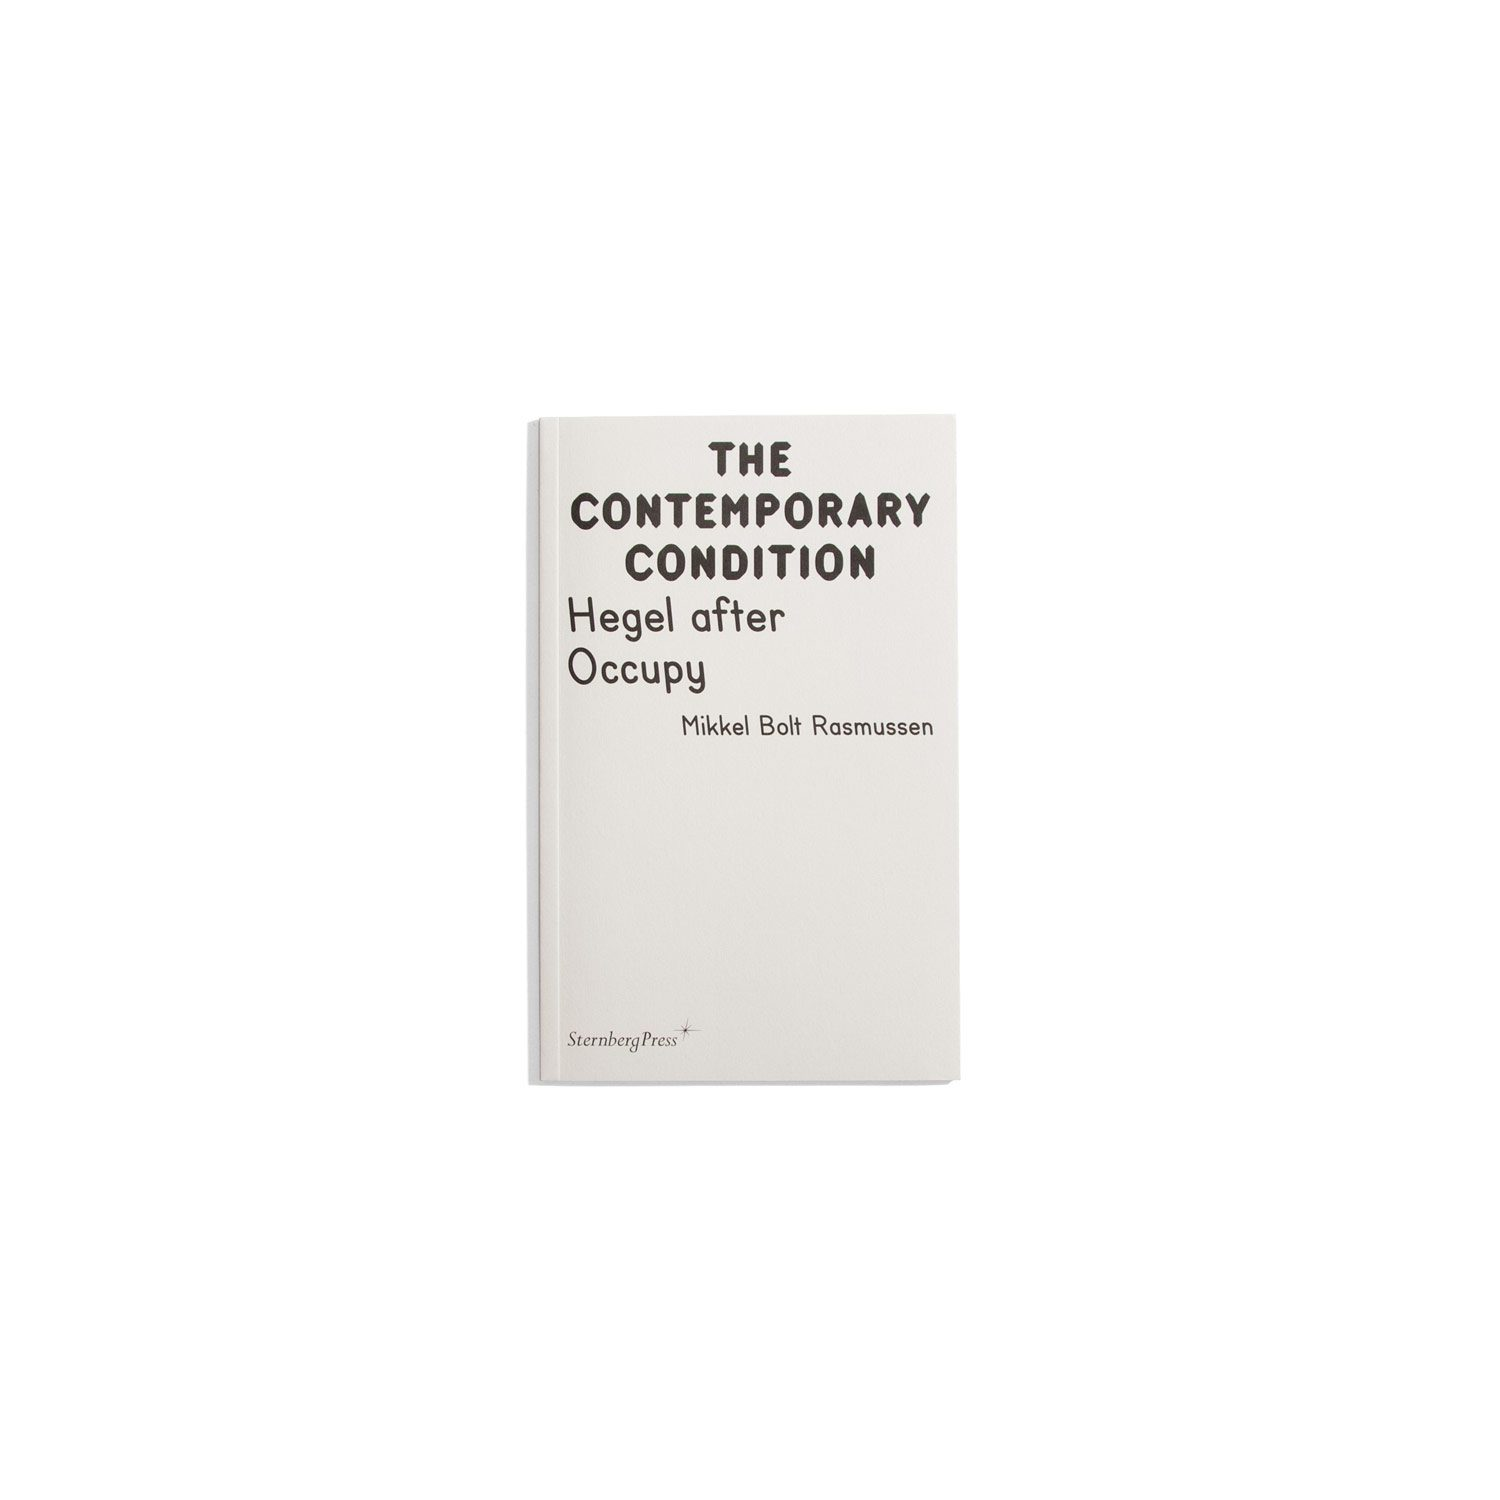 The Contemporary Condition #9 - Hegel after Occupy